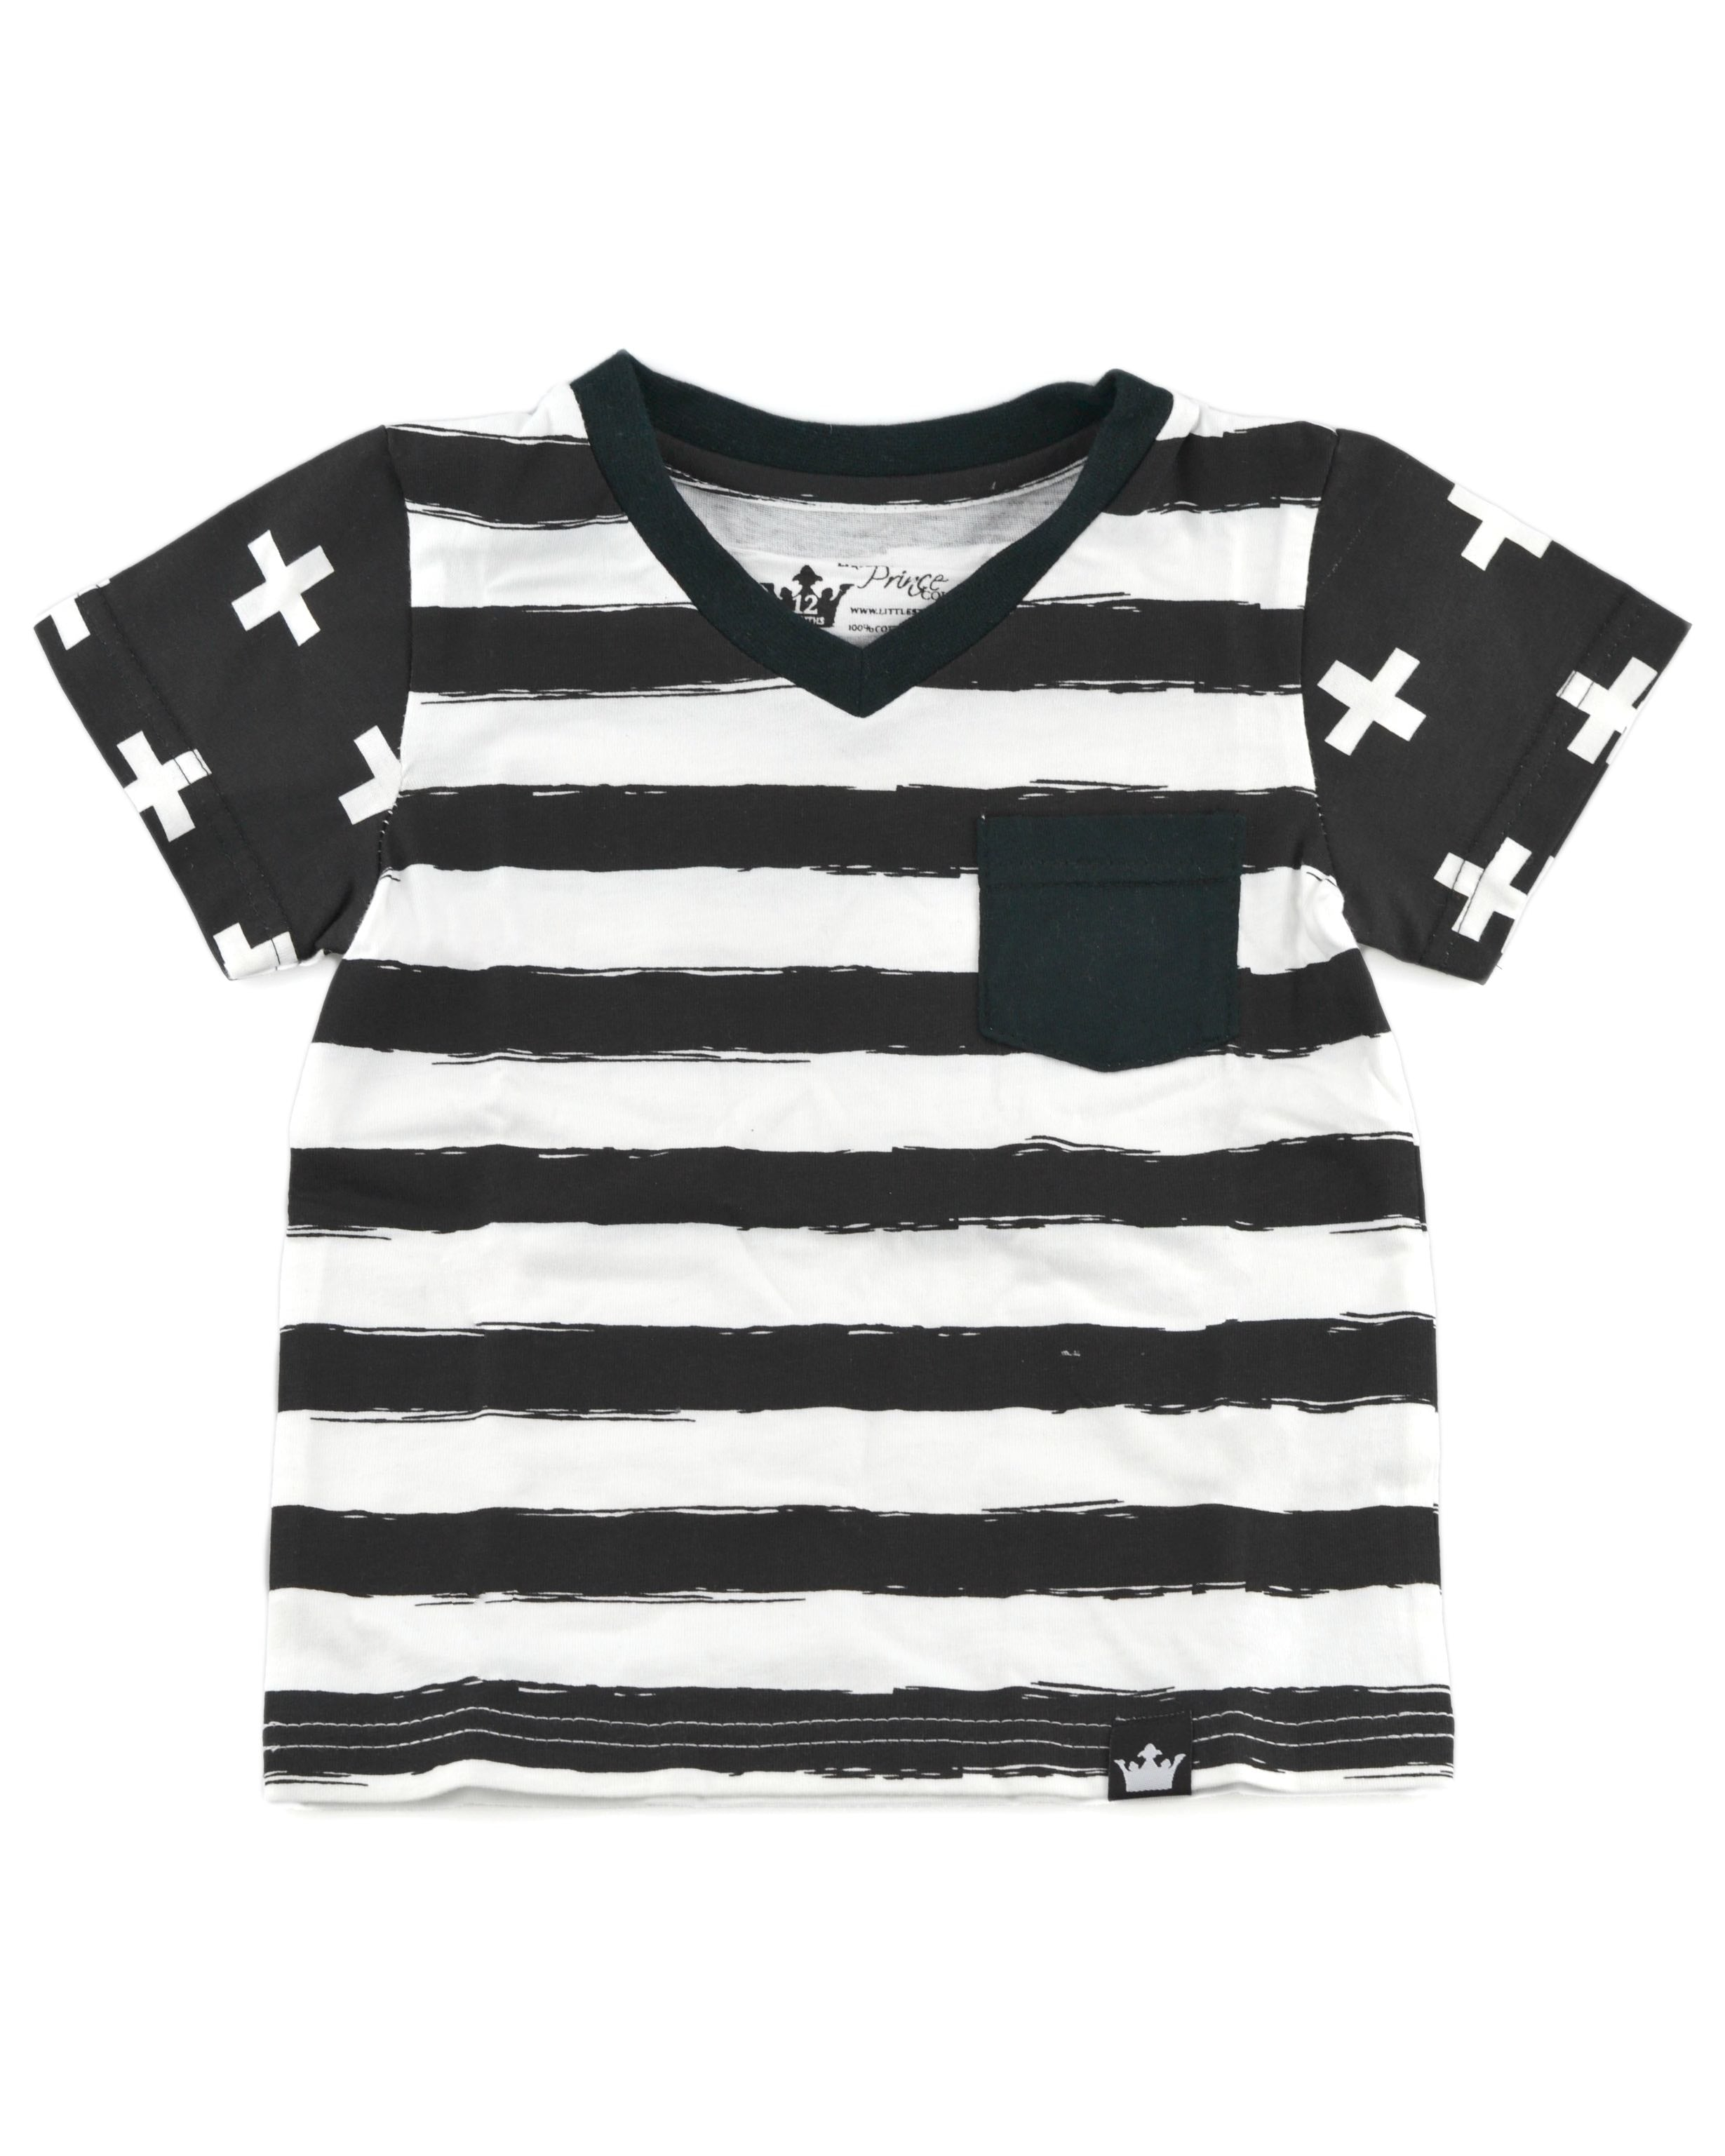 black-white-stripe-swiss-plus-v-neck-shirt.jpg